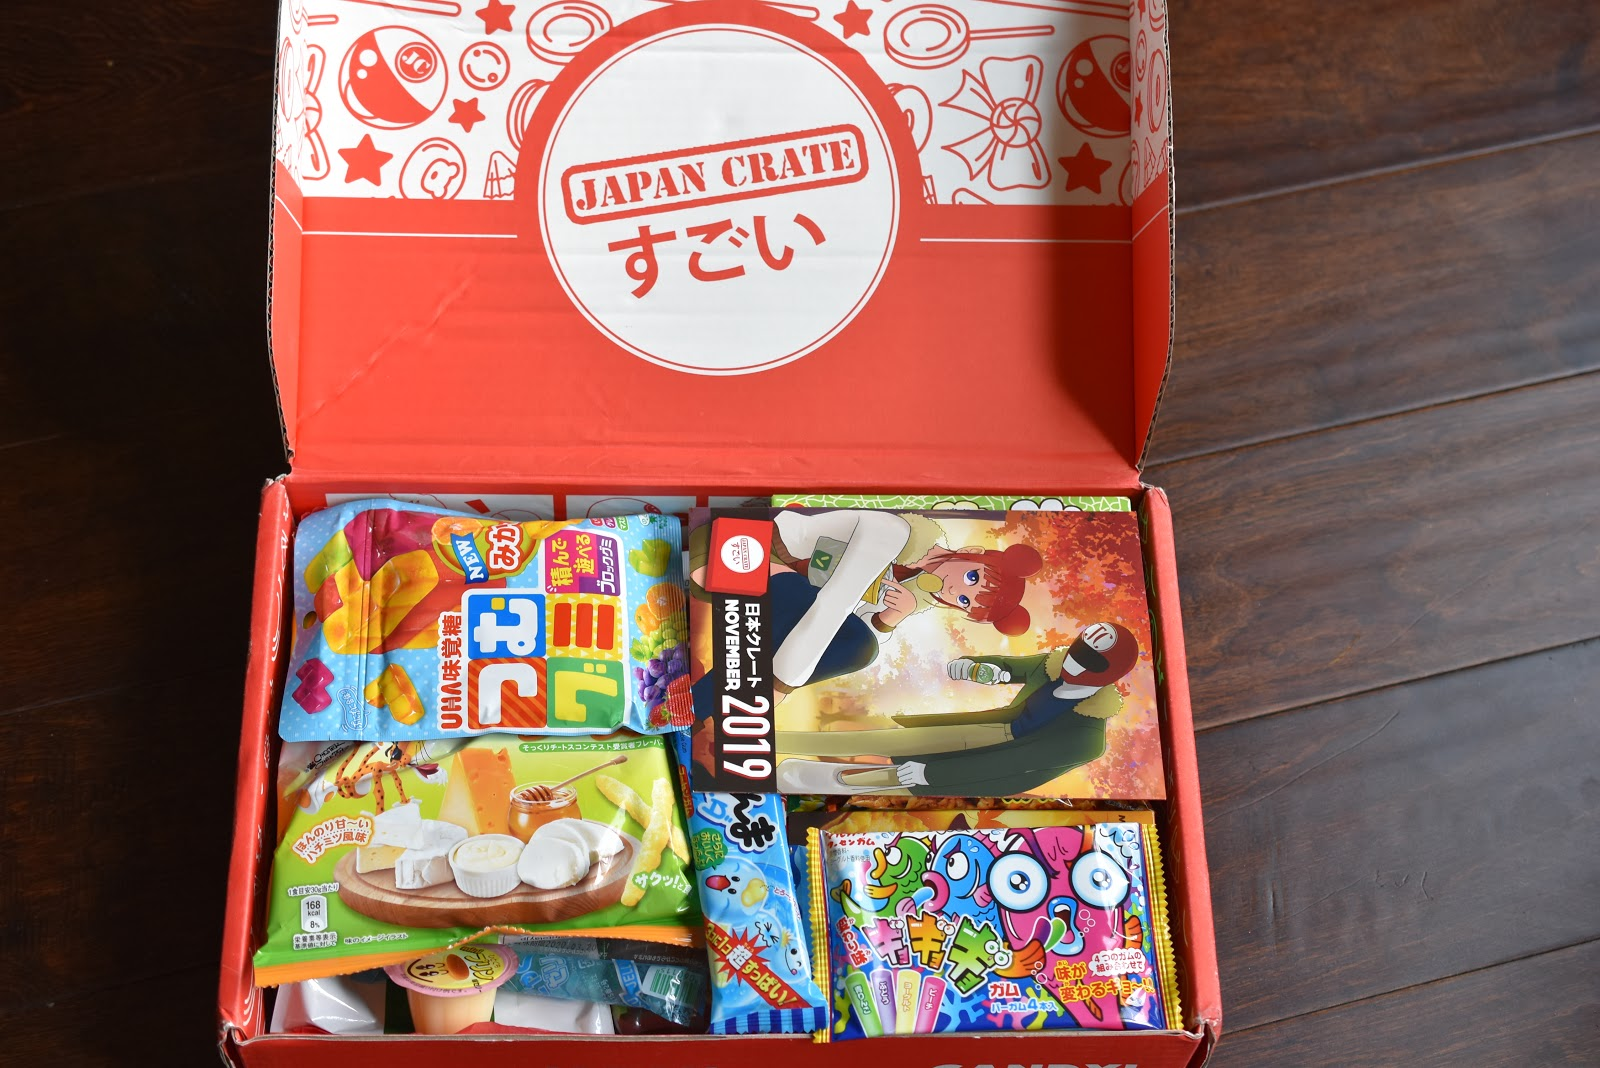 Video: Japan Crate November Snacks and Candy Box Review